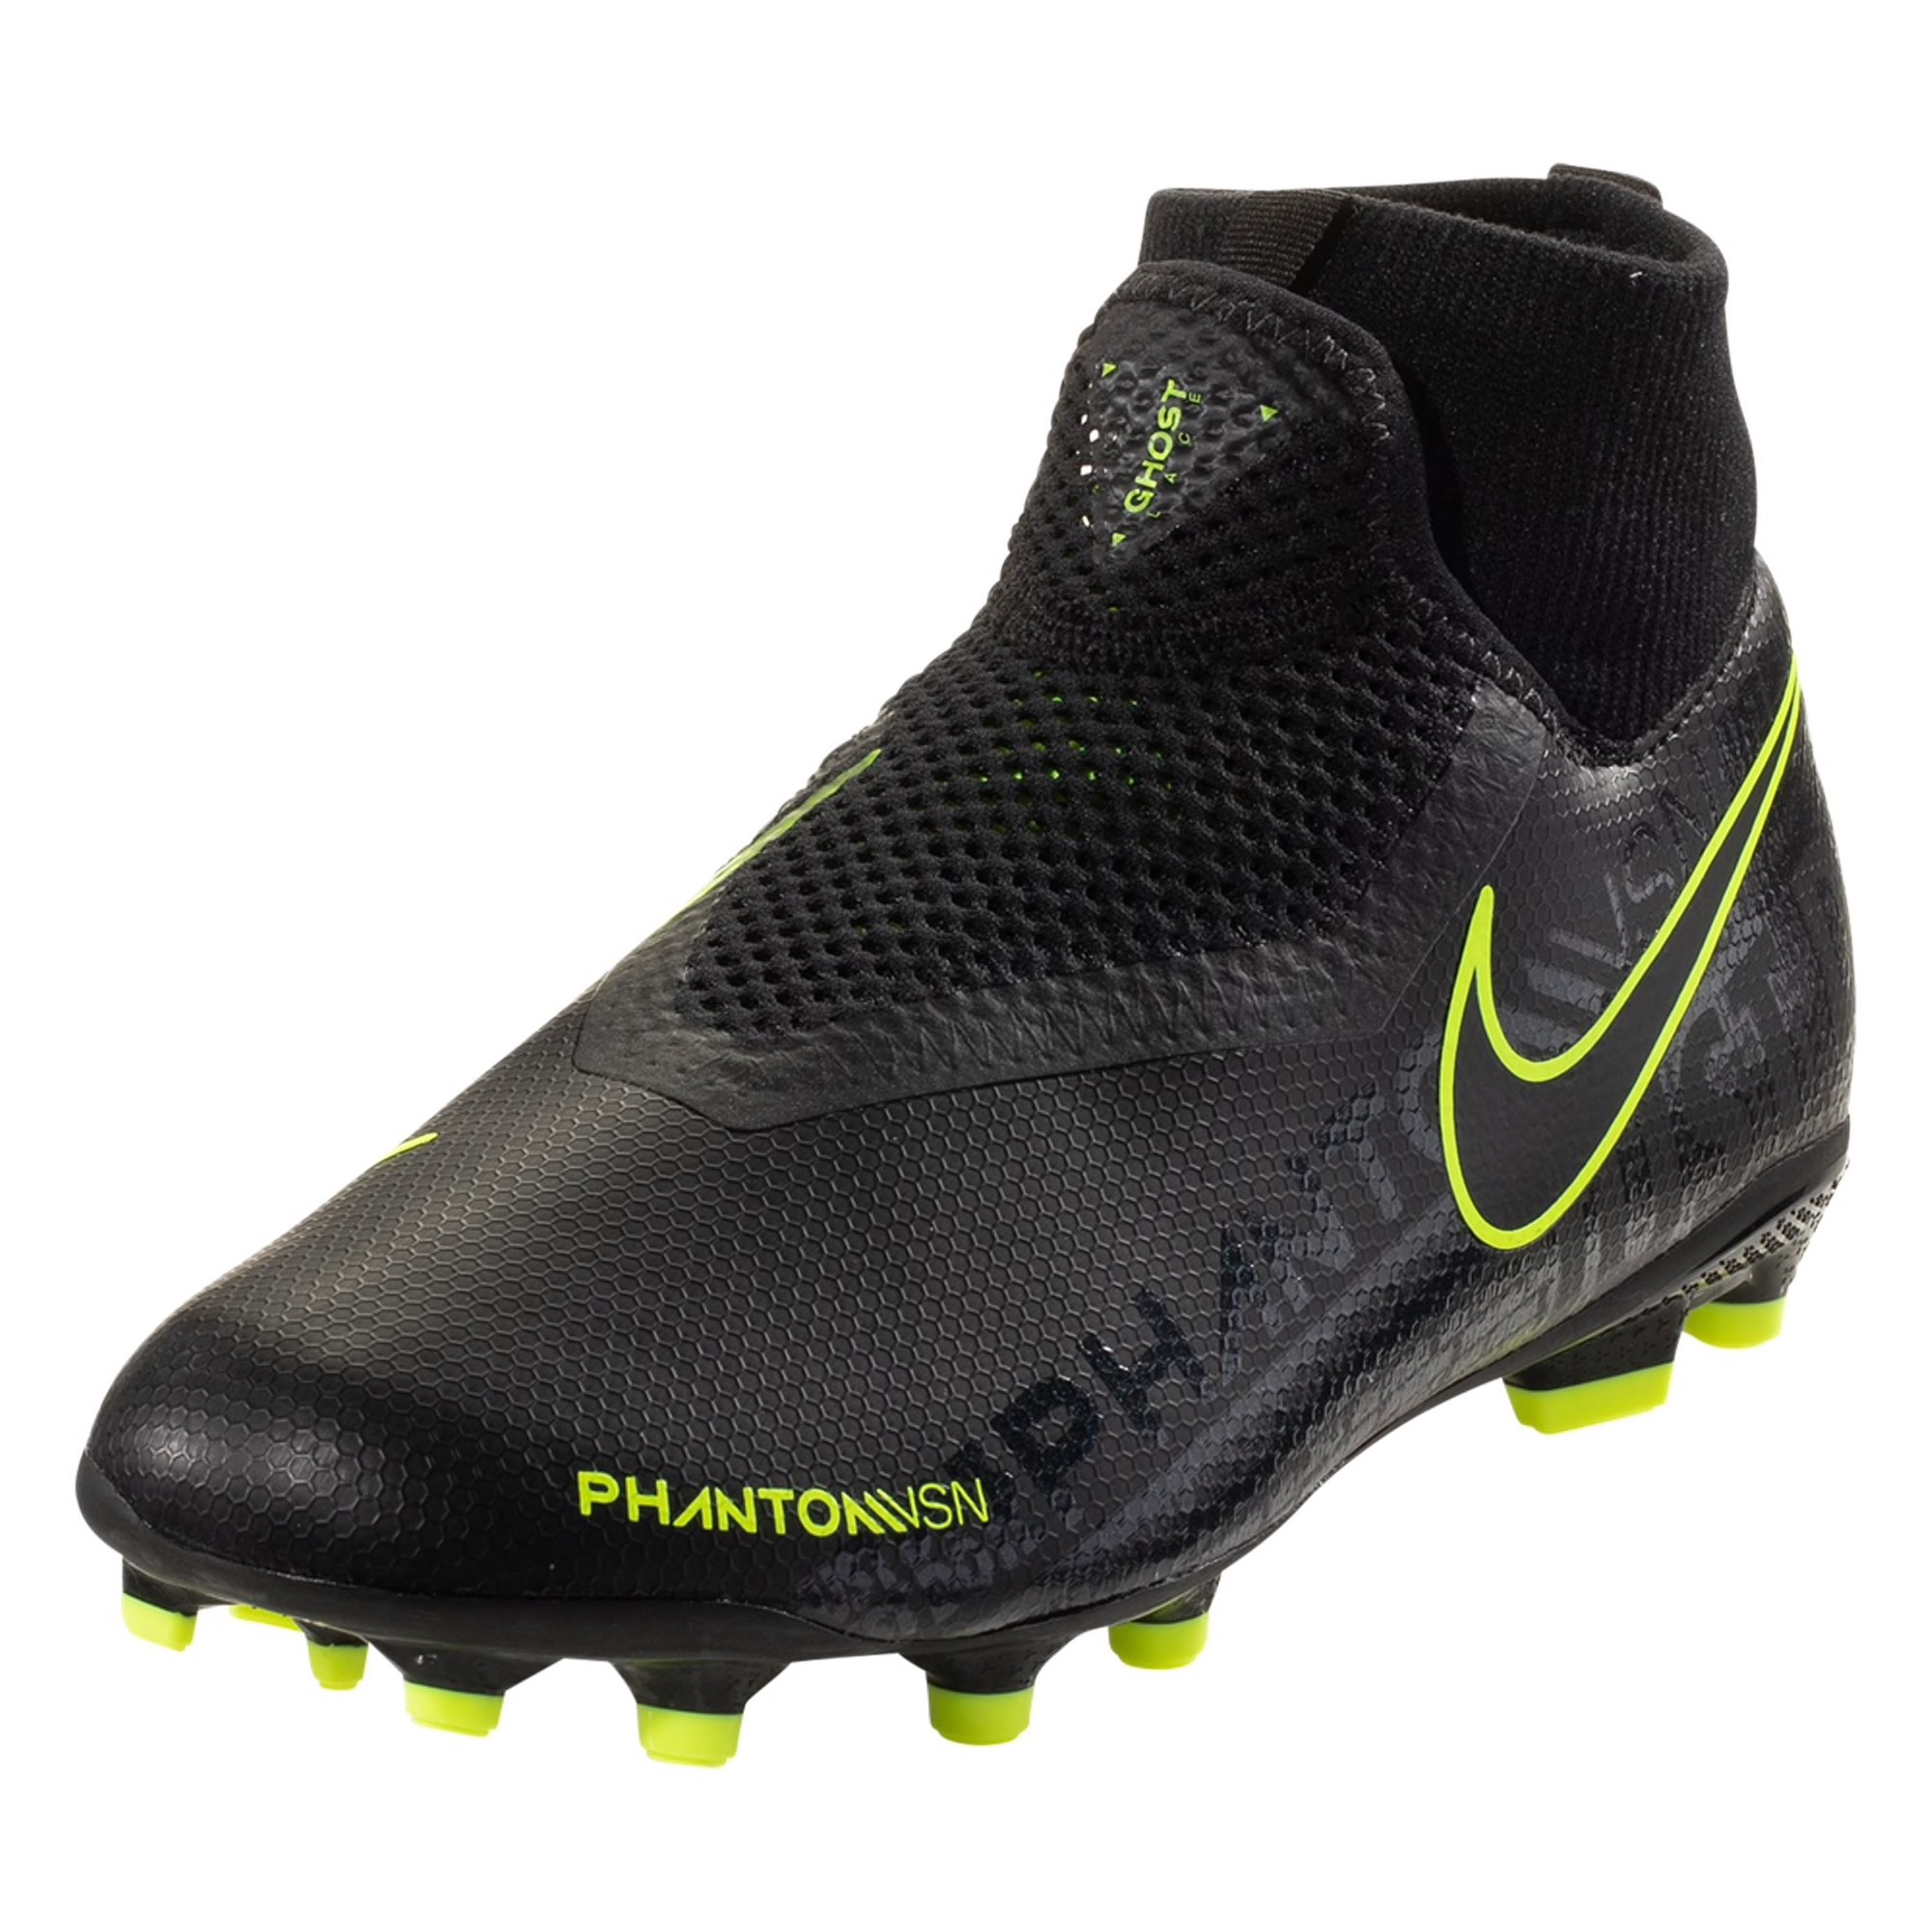 Nike Phantom Vision Academy DF FG/MG Firm Ground Soccer Cleat - Black / Black/Volt